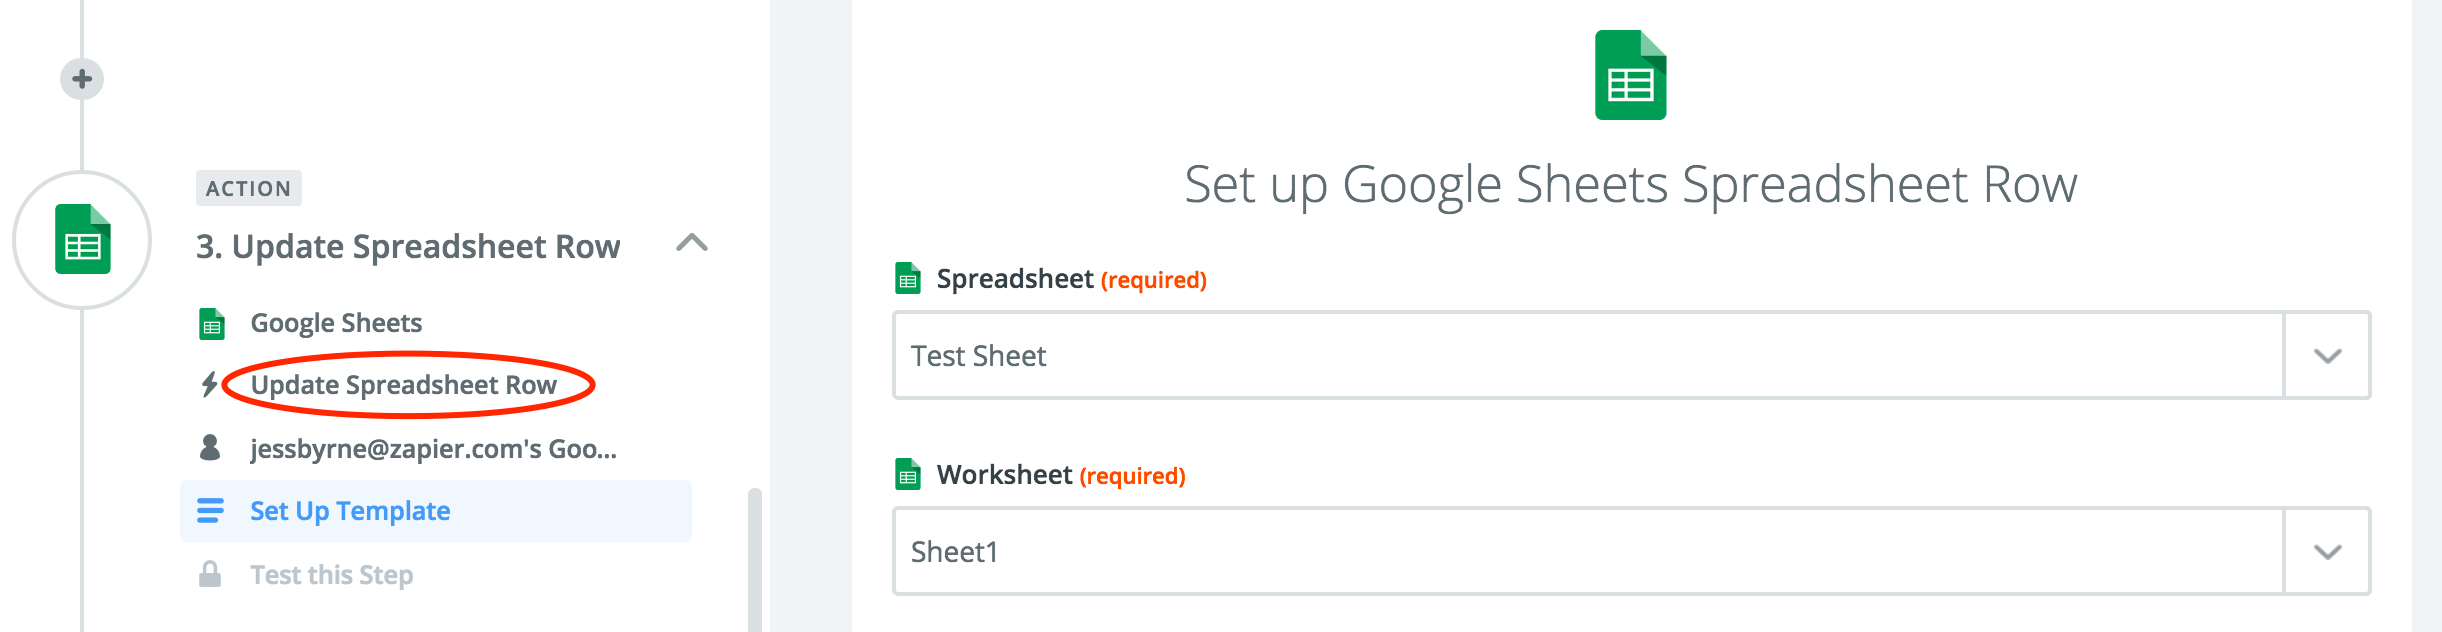 google sheets sum across sheets